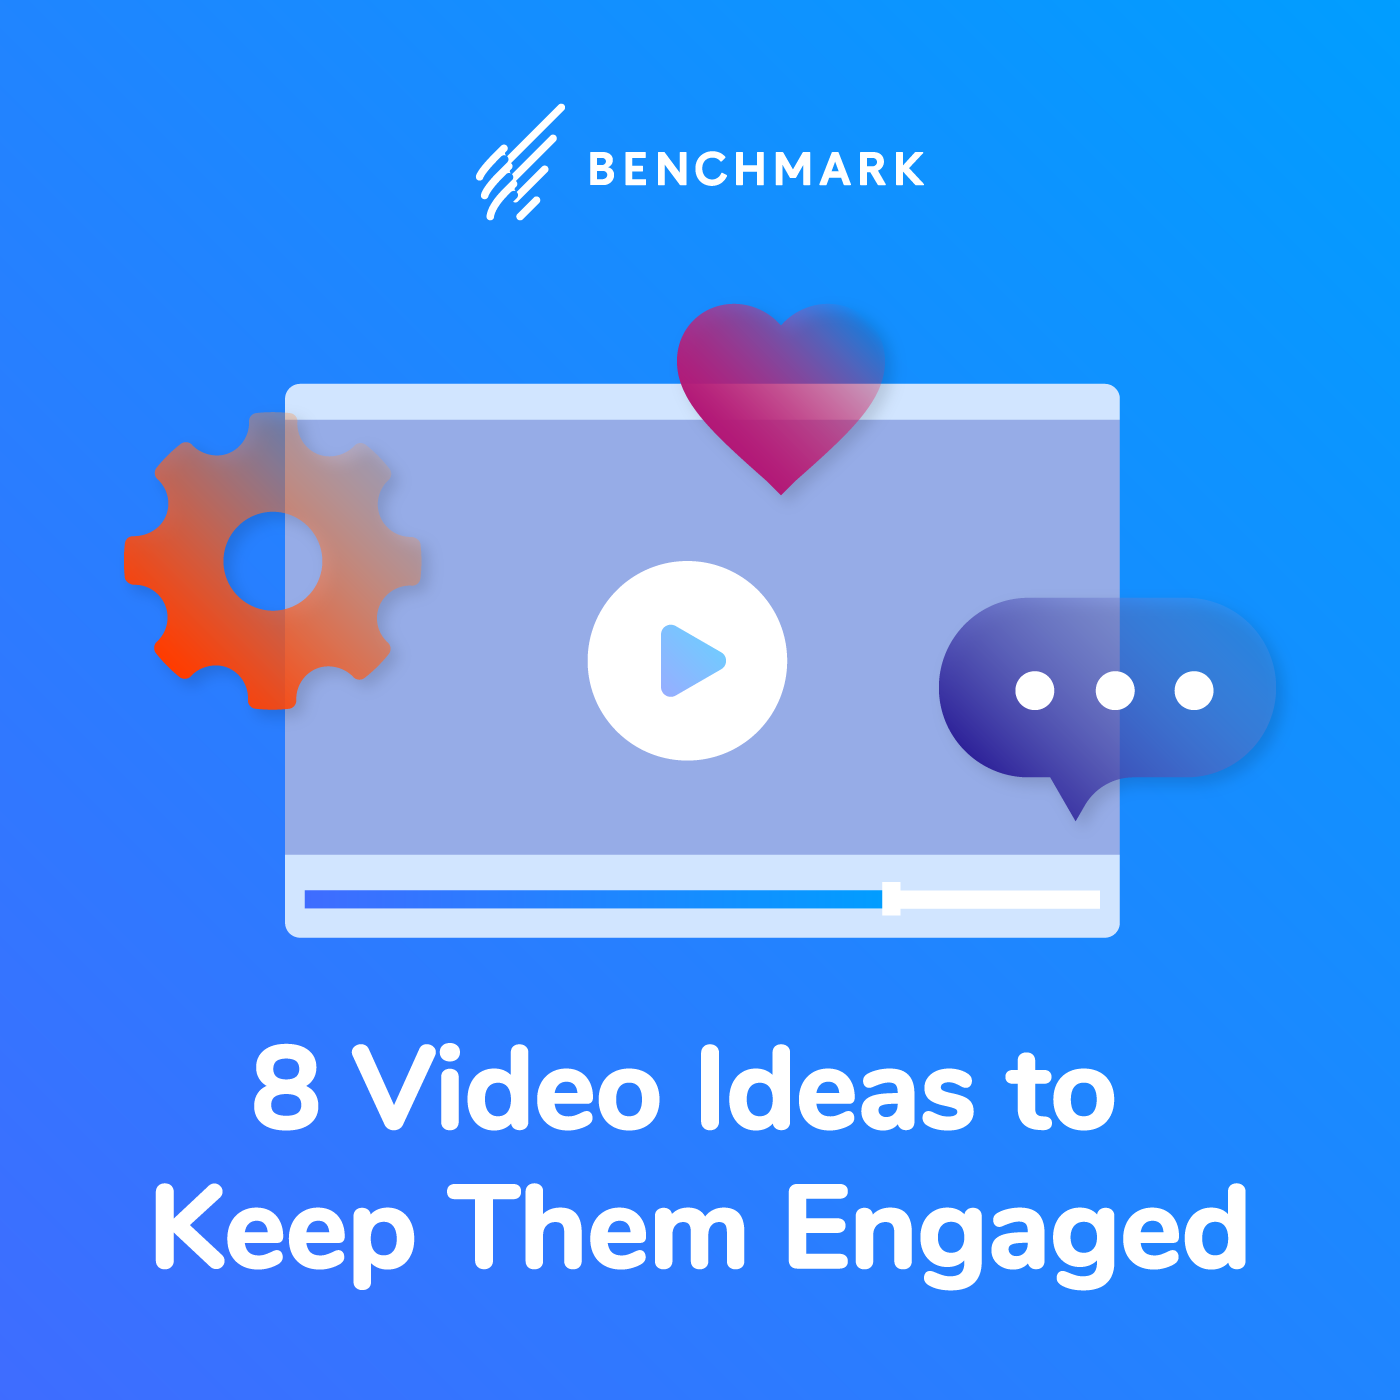 Email Subscriber Loyalty: 8 Video Ideas to Keep Them Engaged